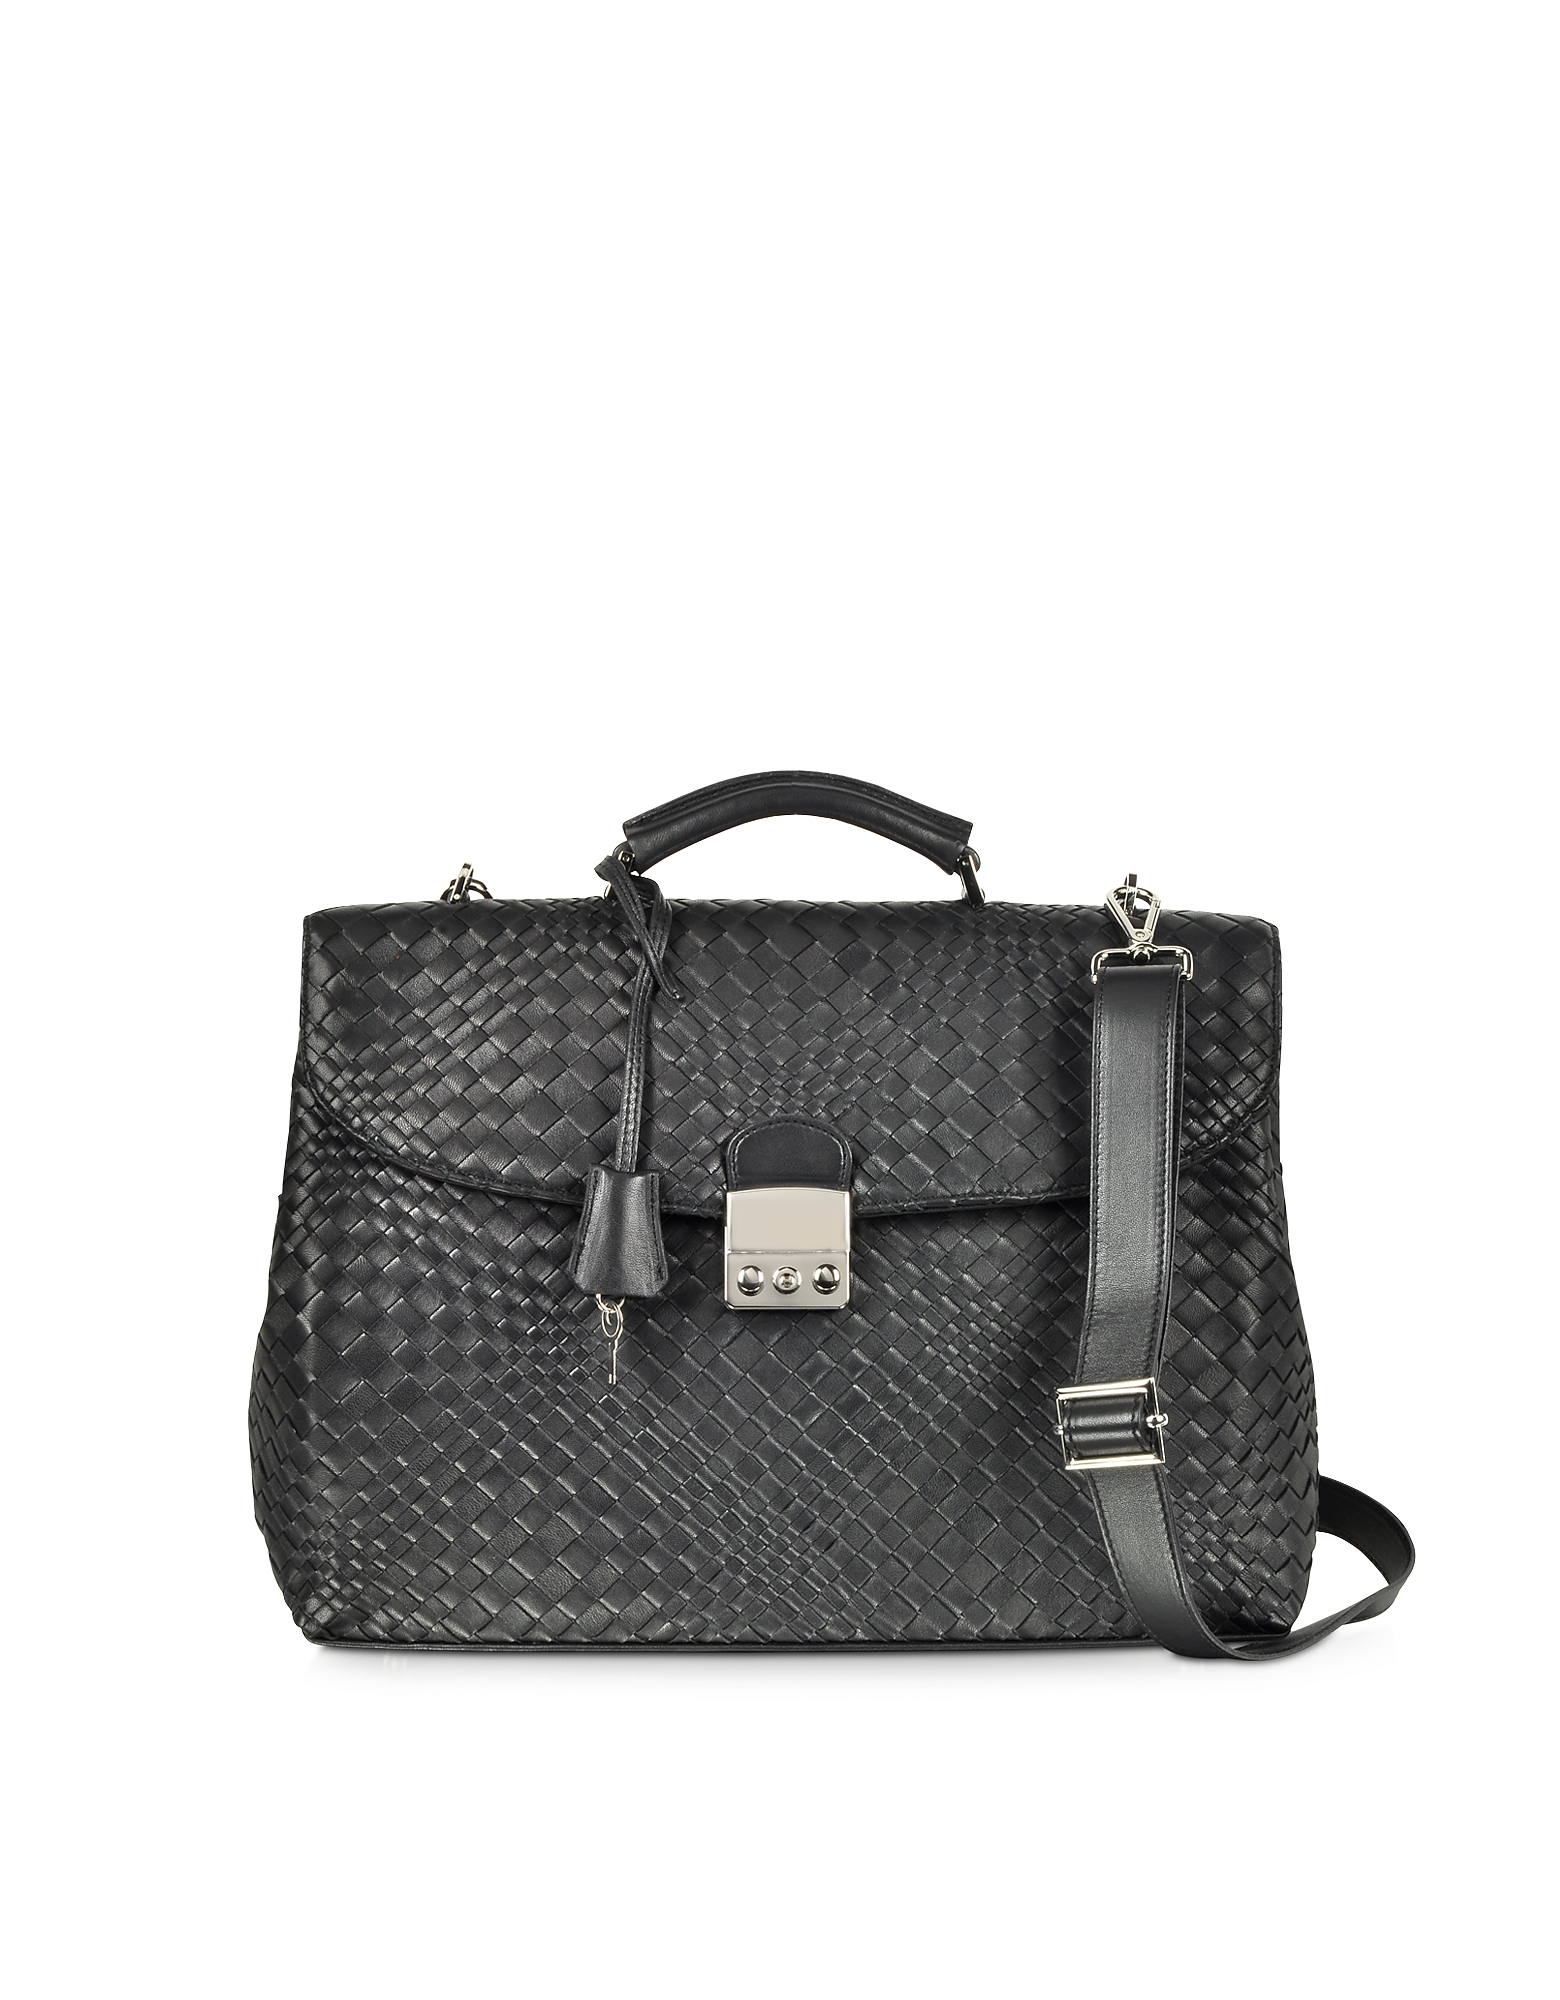 Black Woven Leather Business Bag w/Shoulder Strap